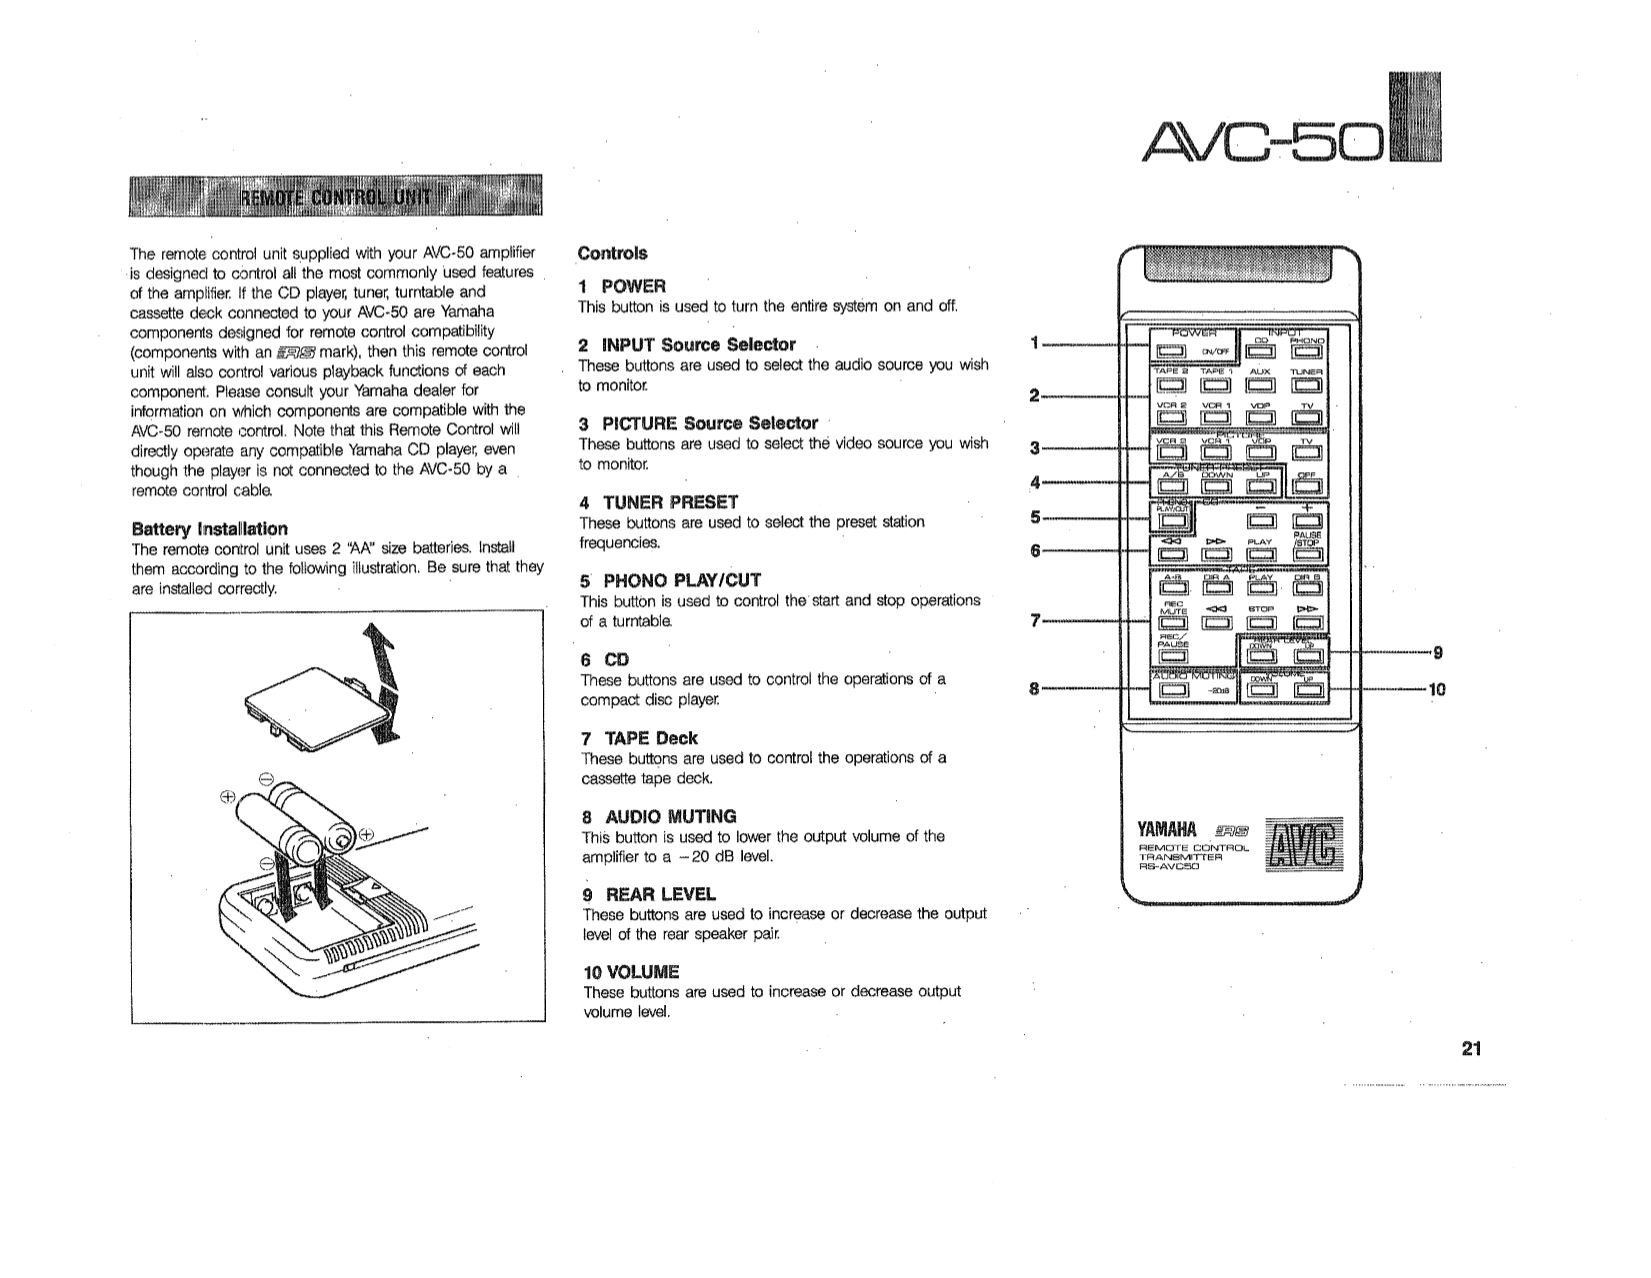 Download free pdf for Yamaha AVC-50 Amp manual